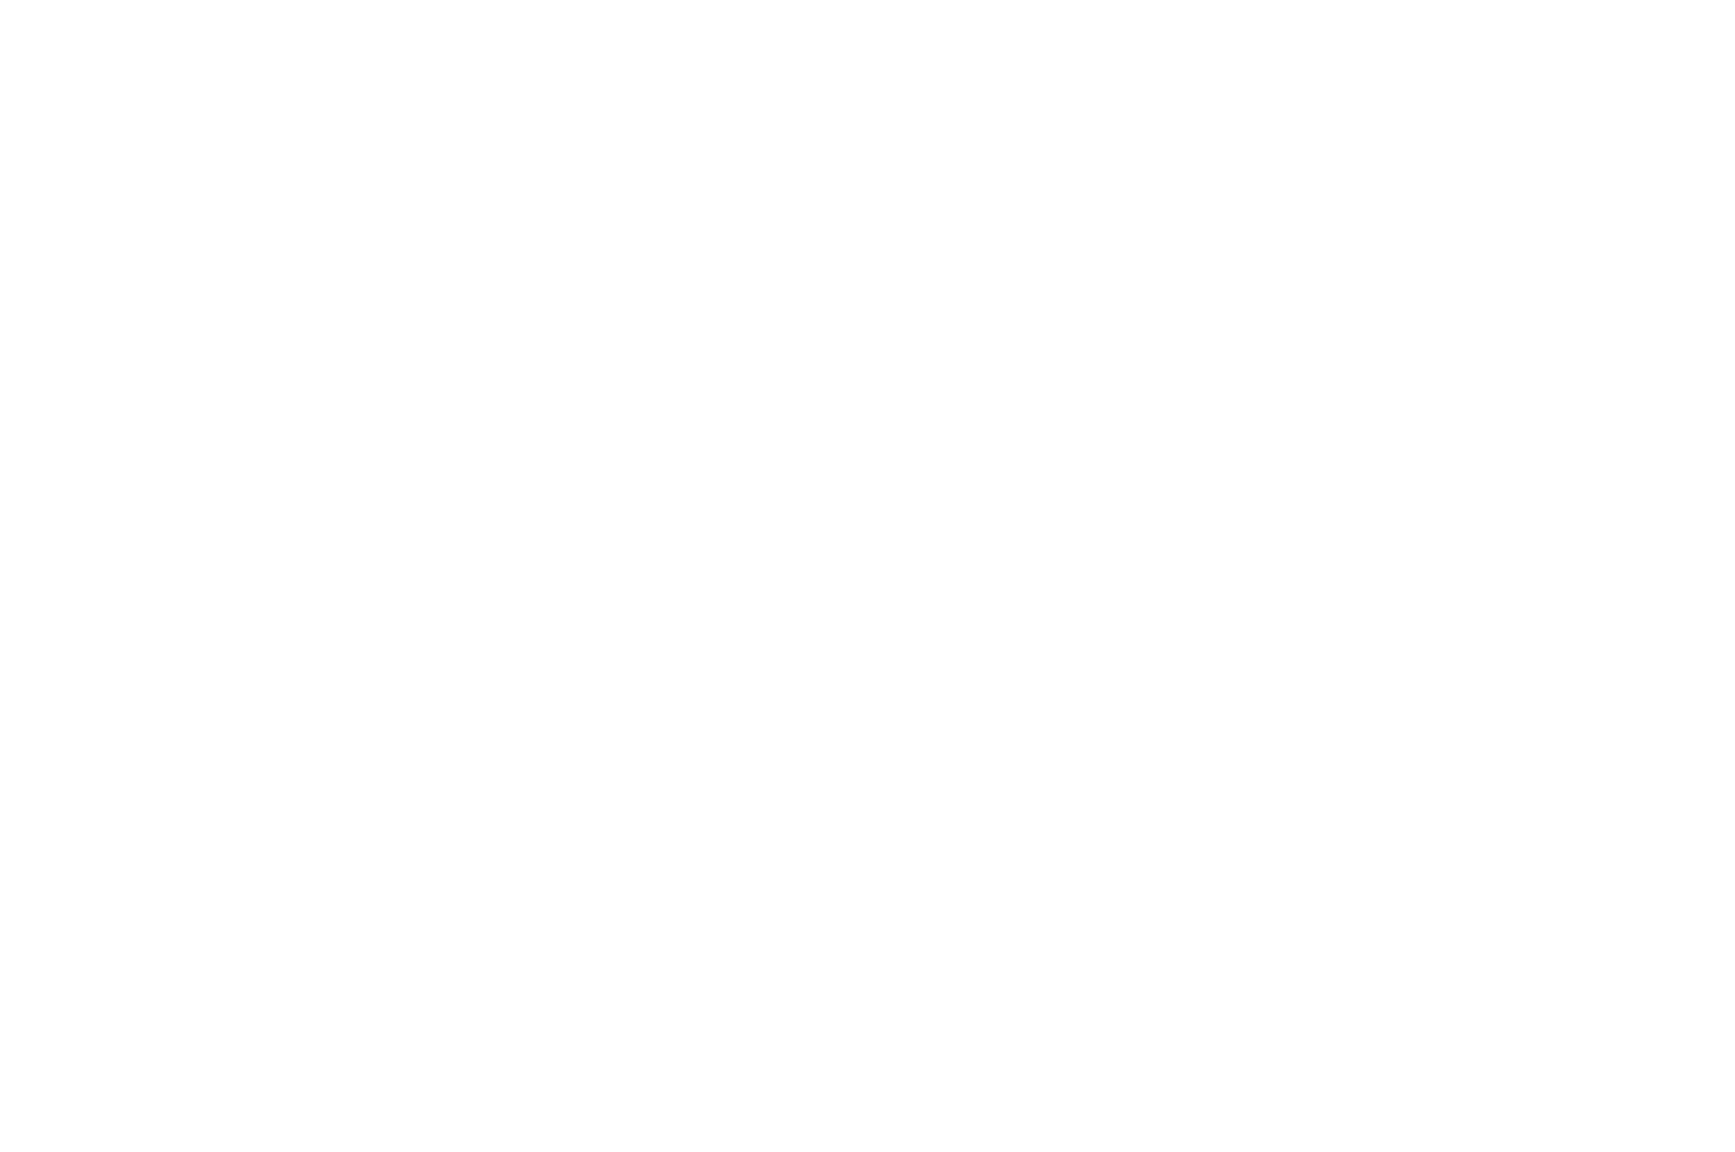 QUARTER-FINALIST - Scriptapalooza International Screenplay Competition